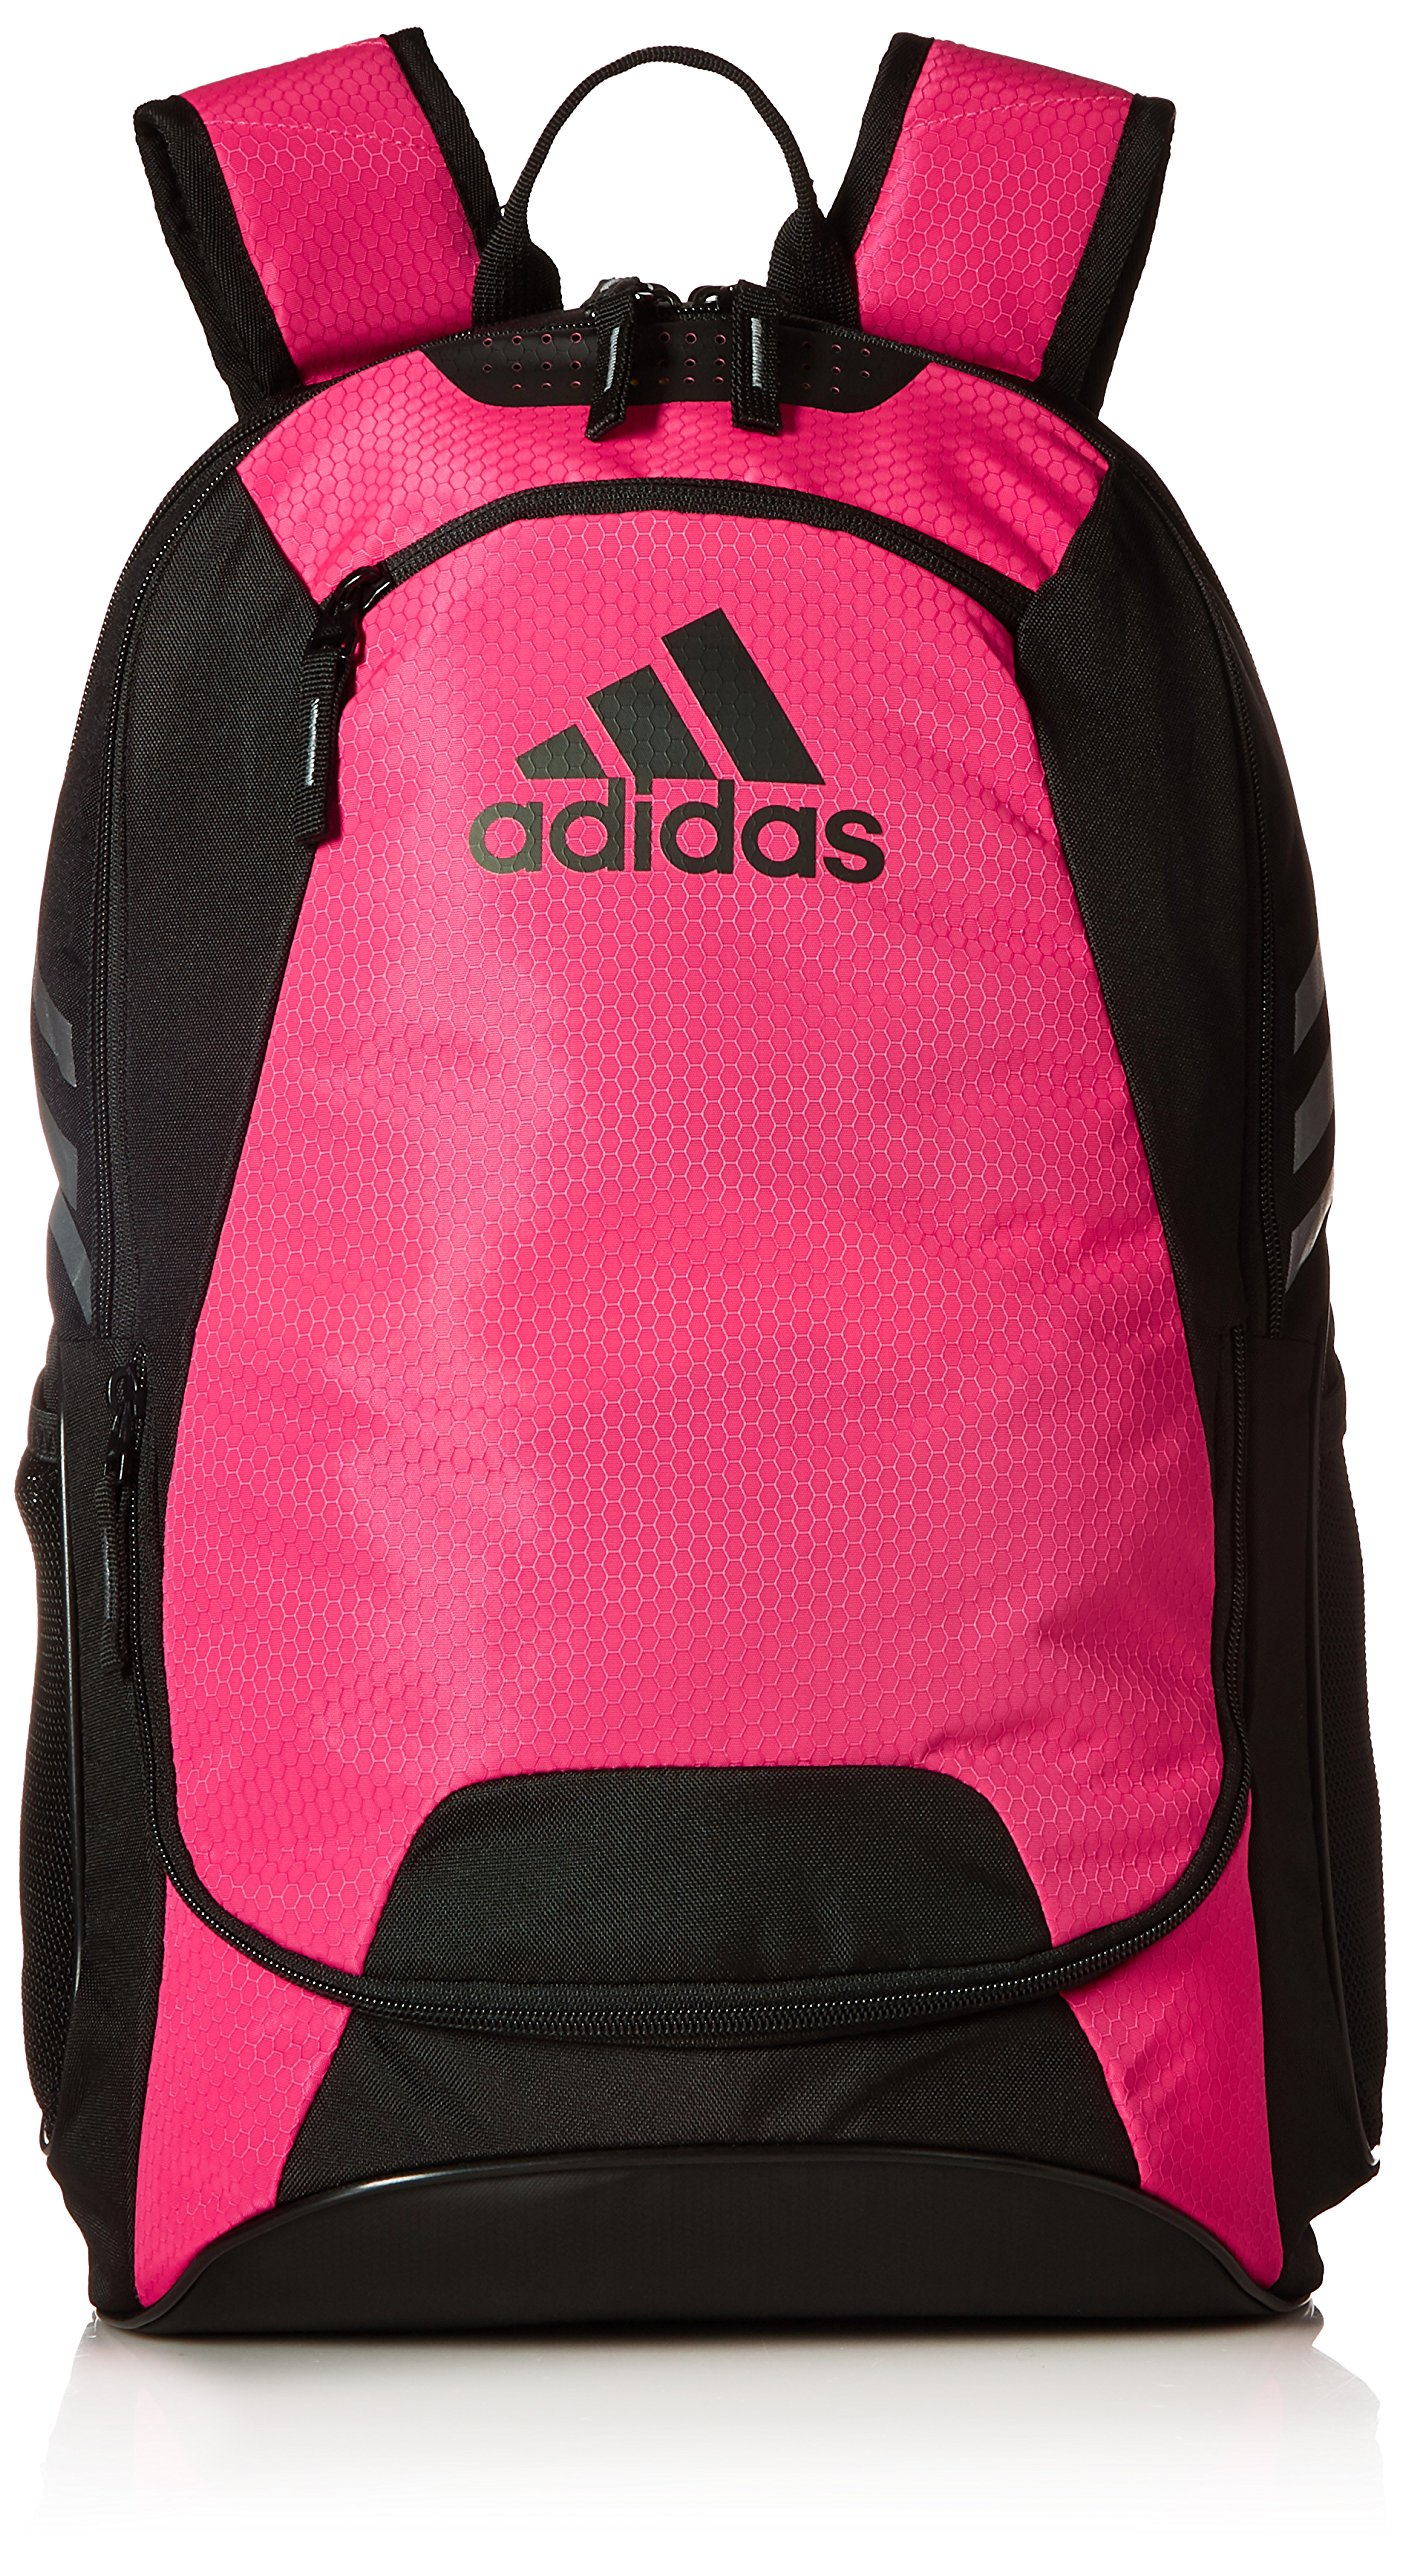 adidas Stadium II backpack, Shock Pink, One Size